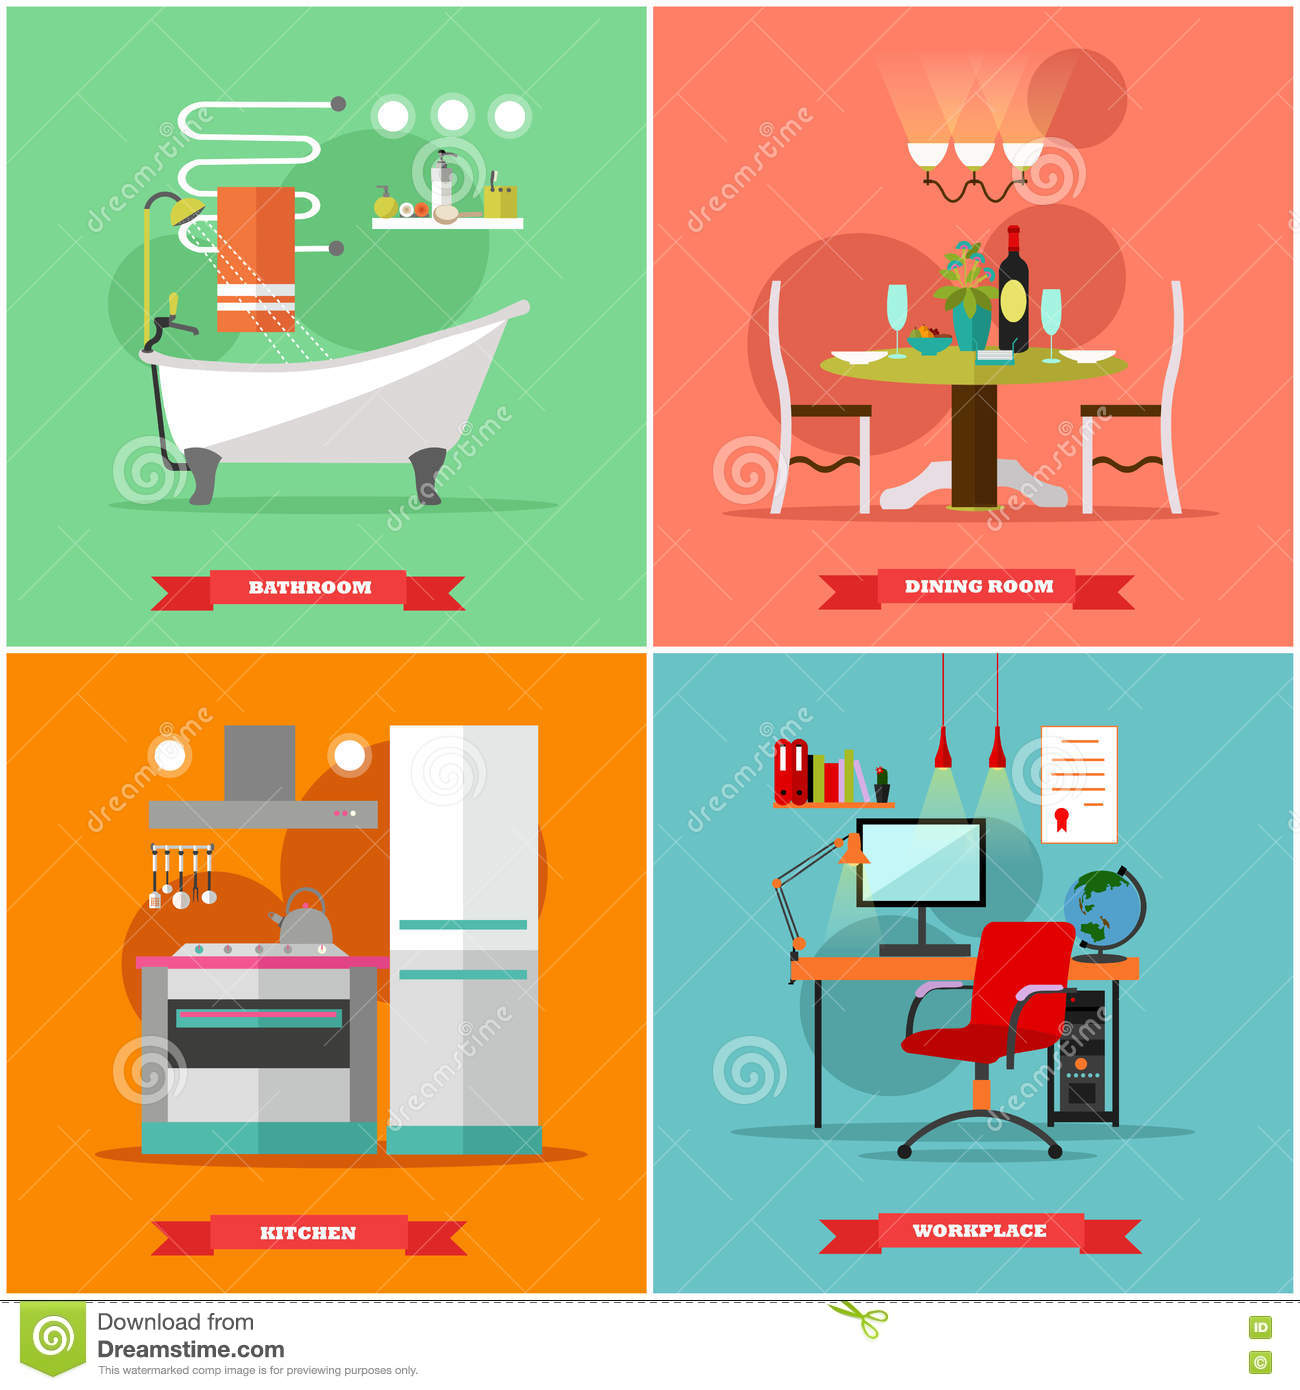 All rooms in the house rooms of homes vector art image illustration - Home Interior Vector Illustration In Flat Style House Design With Furniture Kitchen Bathroom